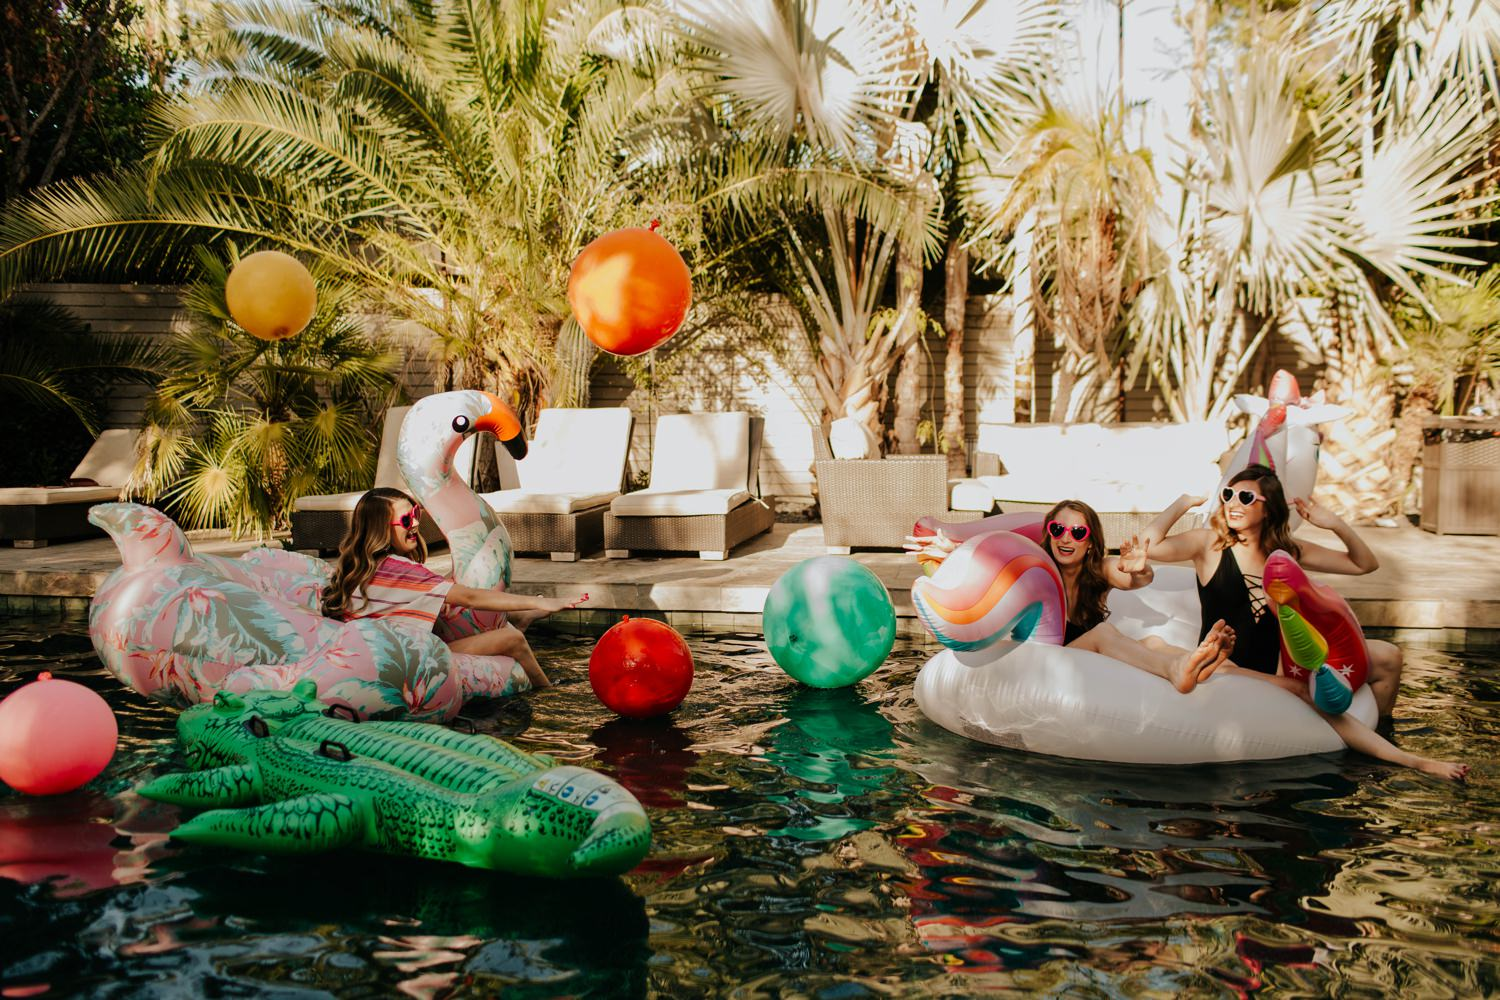 La S Final Fiesta In Scottsdale Arizona Bachelorette